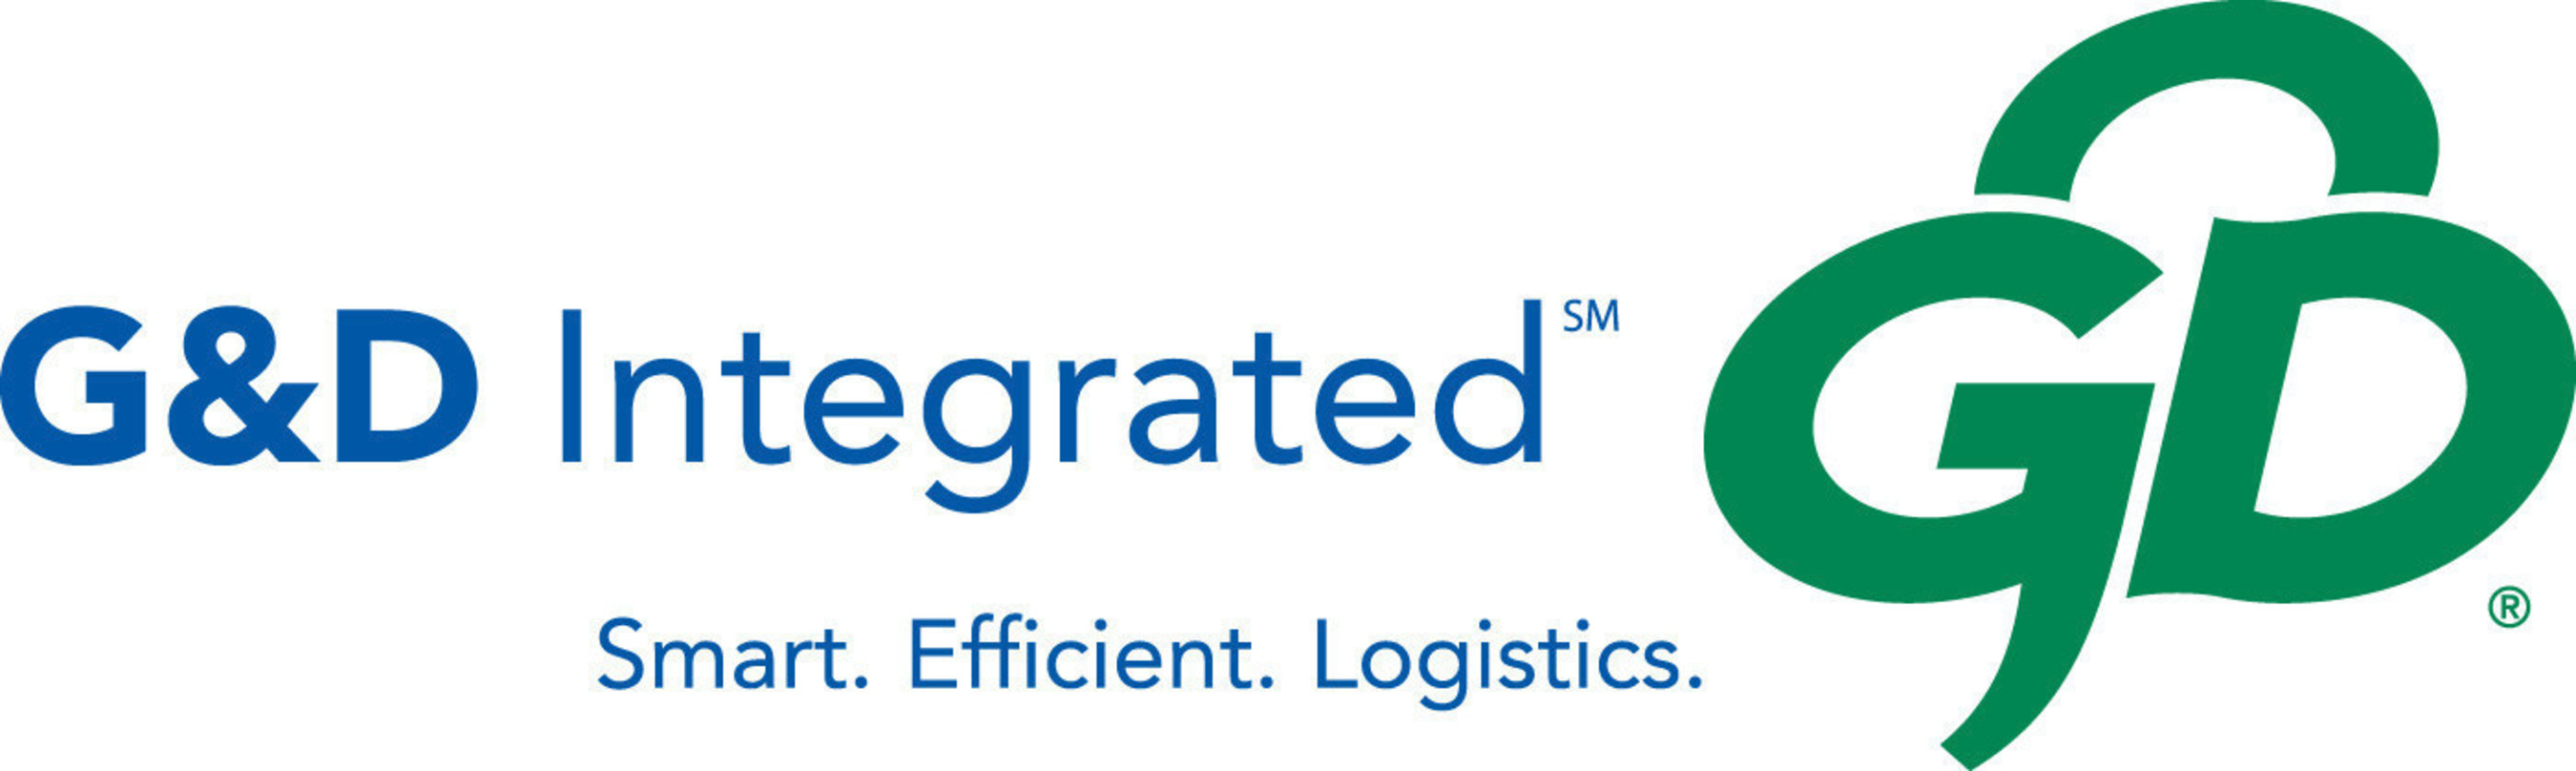 G&D Integrated Opens New Freight Brokerage Office In Chicago Metro Area